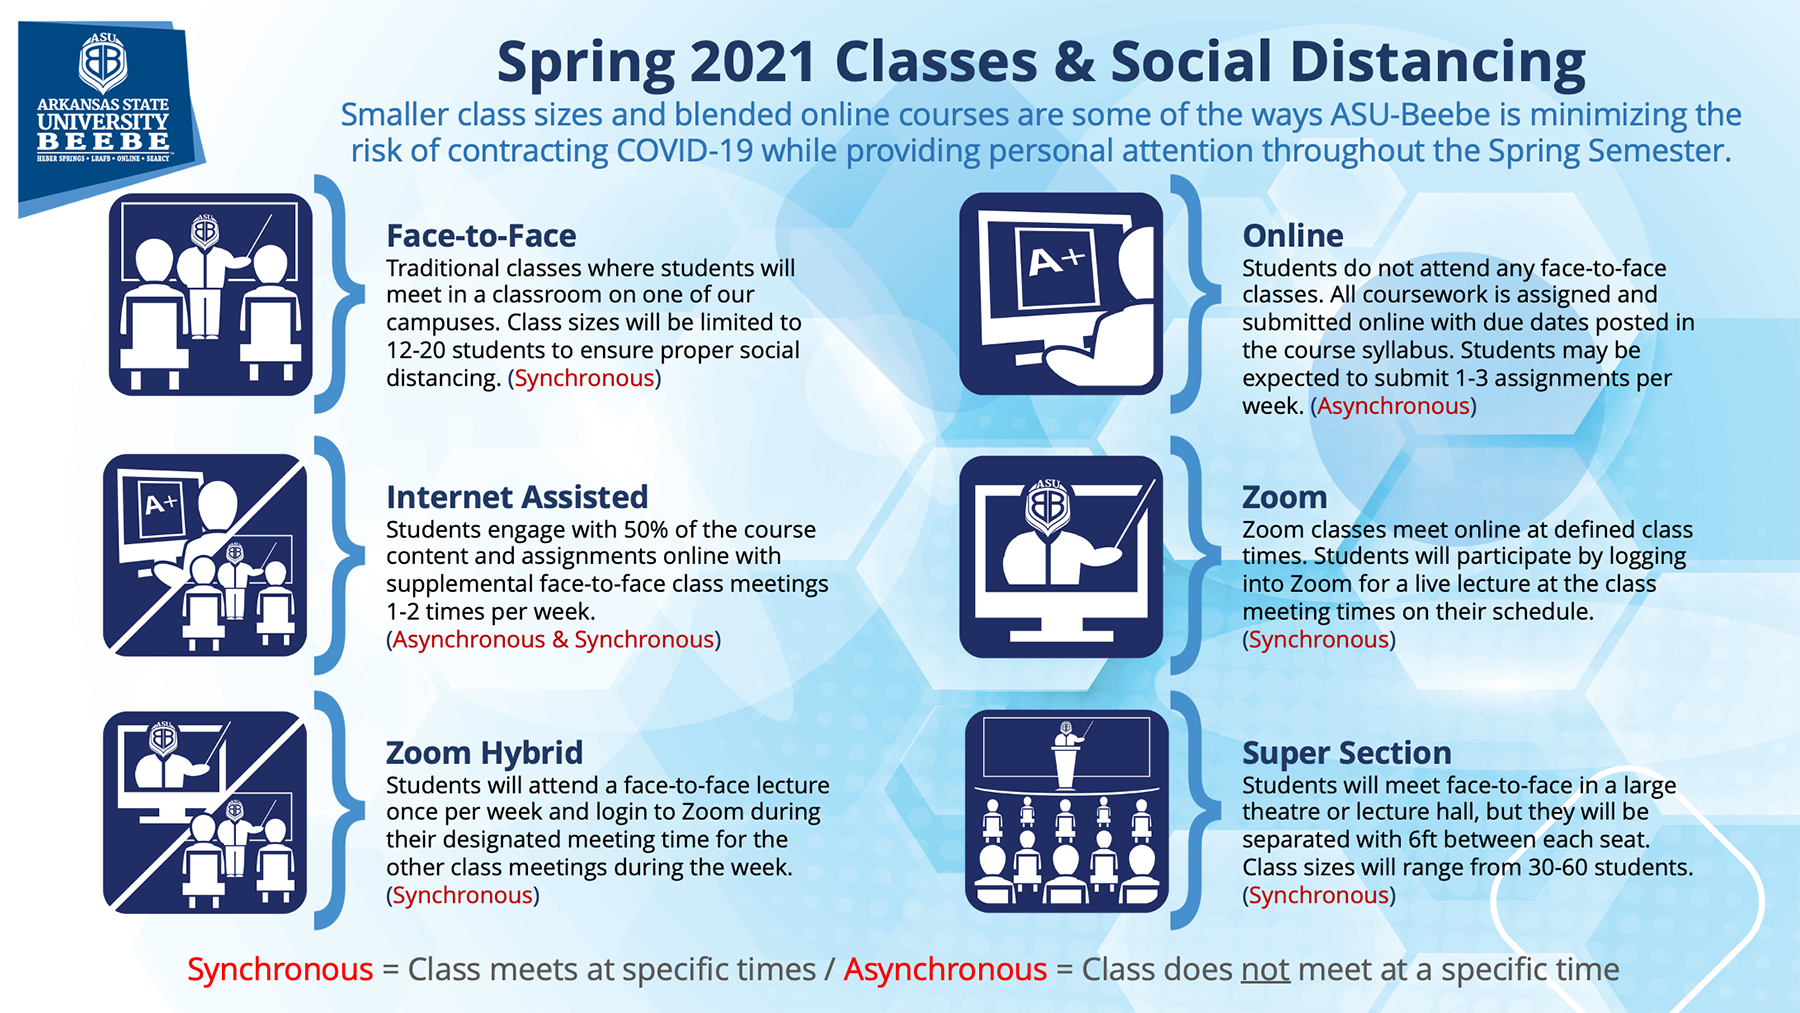 Spring 2021 Class Design Image Chart